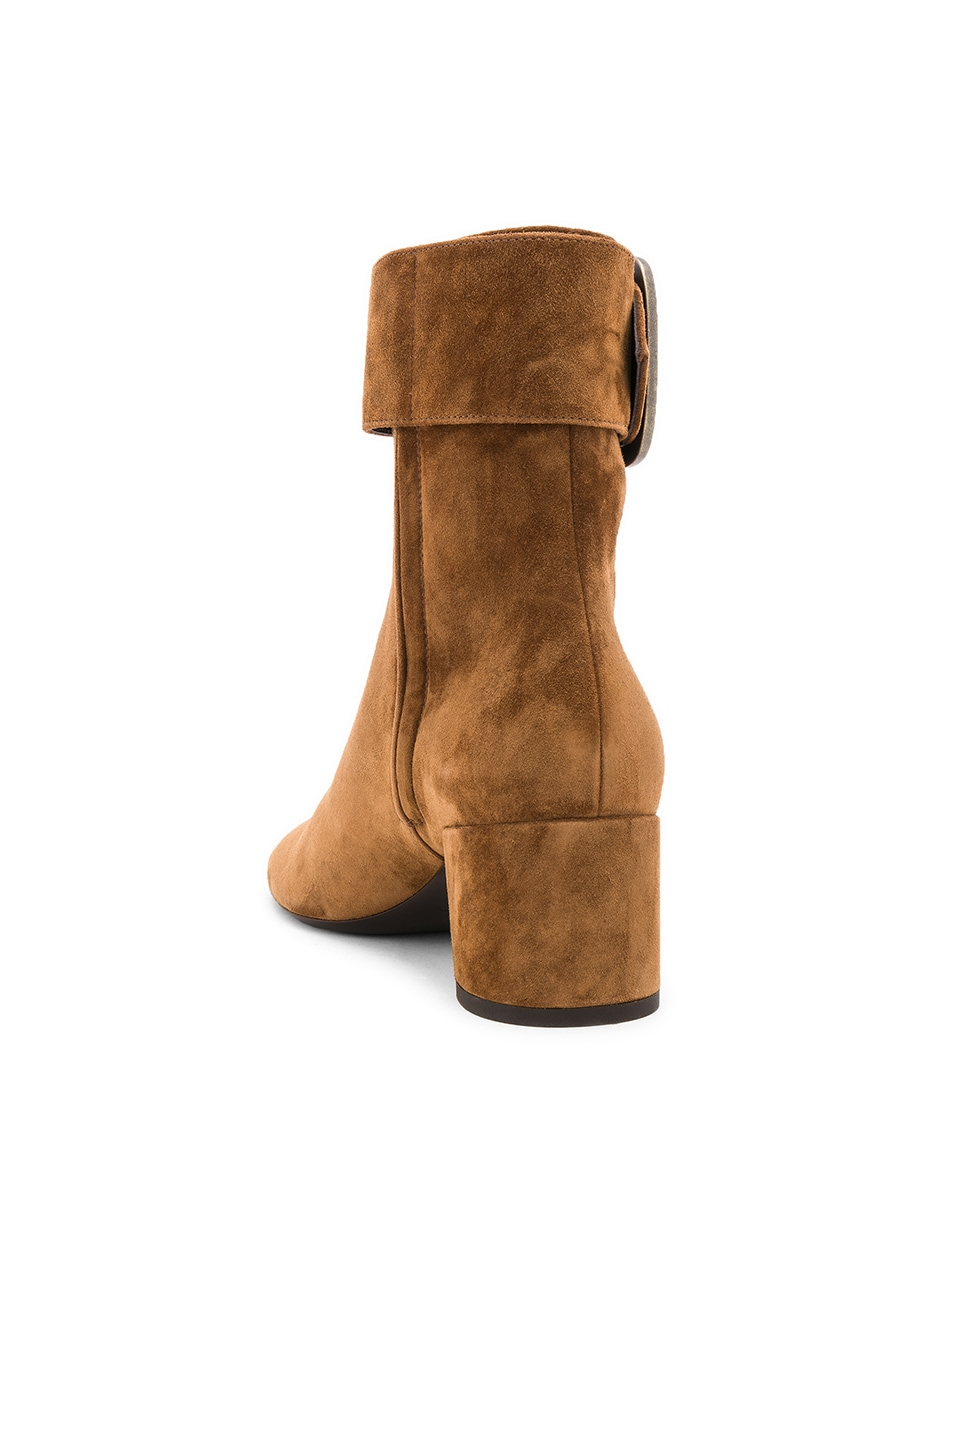 Image 3 of Saint Laurent Suede Joplin Buckle Ankle Boots in Caramel